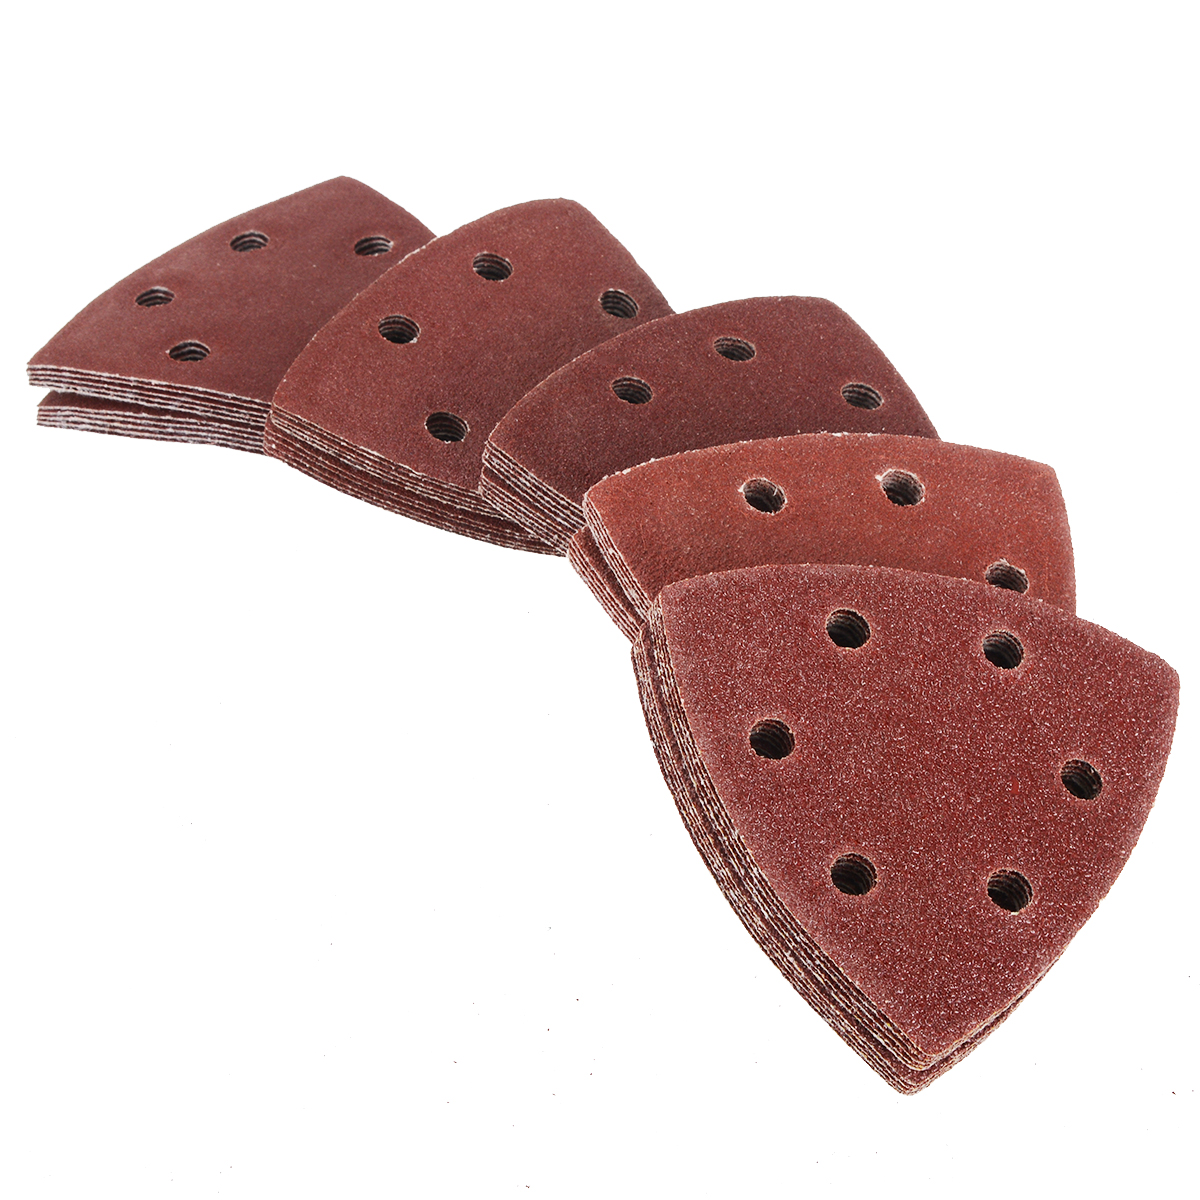 Mayitr 50Pcs 90mm Triangle Sanding Sheets Mouse Detail Sander Pads Sandpaper 40 60 80 100 120Grit For Grinding Abrasive Tools